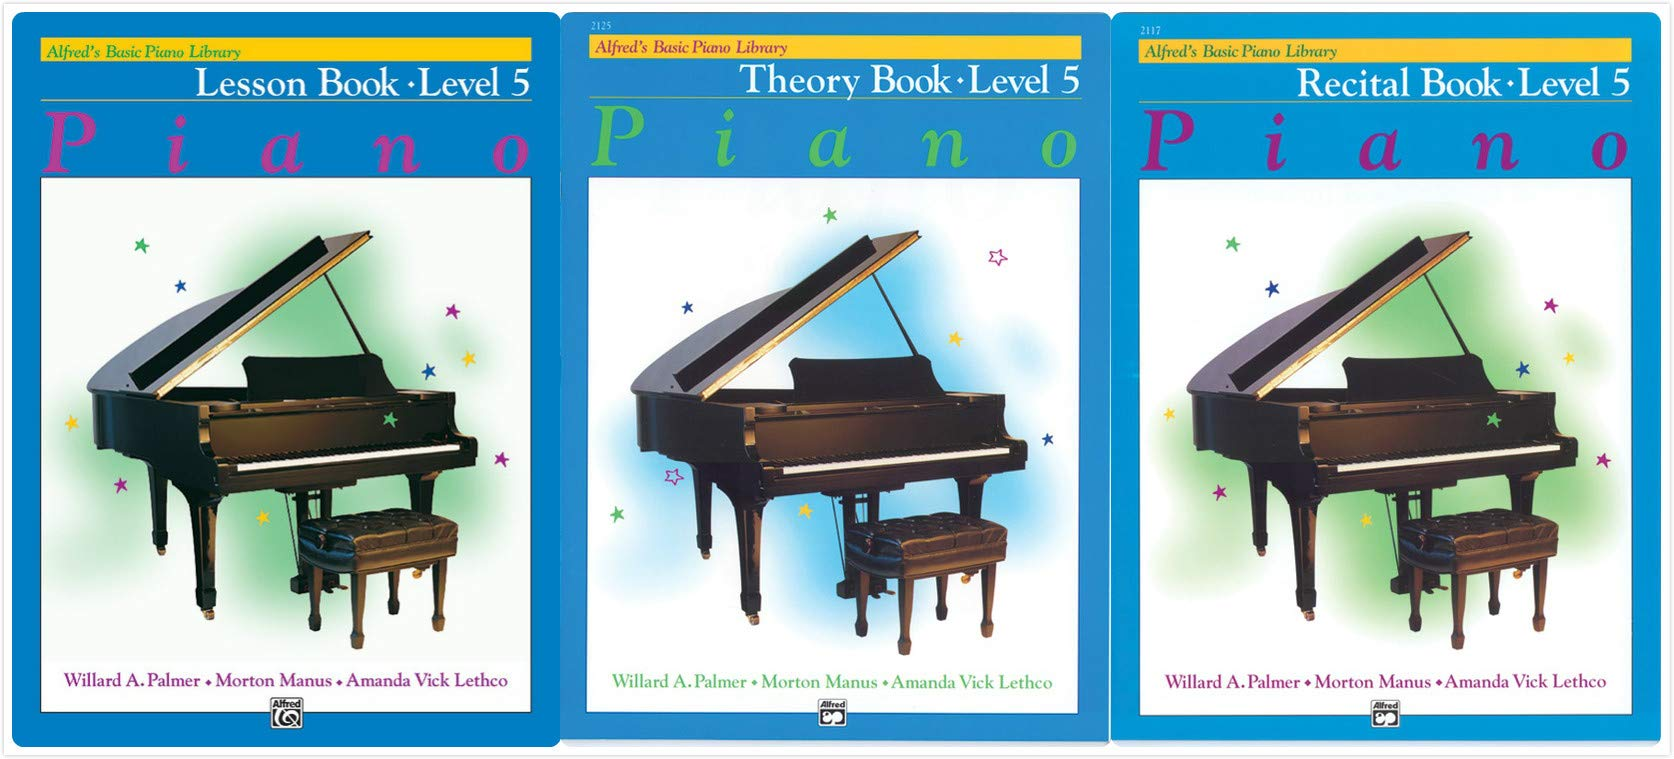 Lesson Book Level 5 from Alfred/'s Basic Piano Library *NEW*